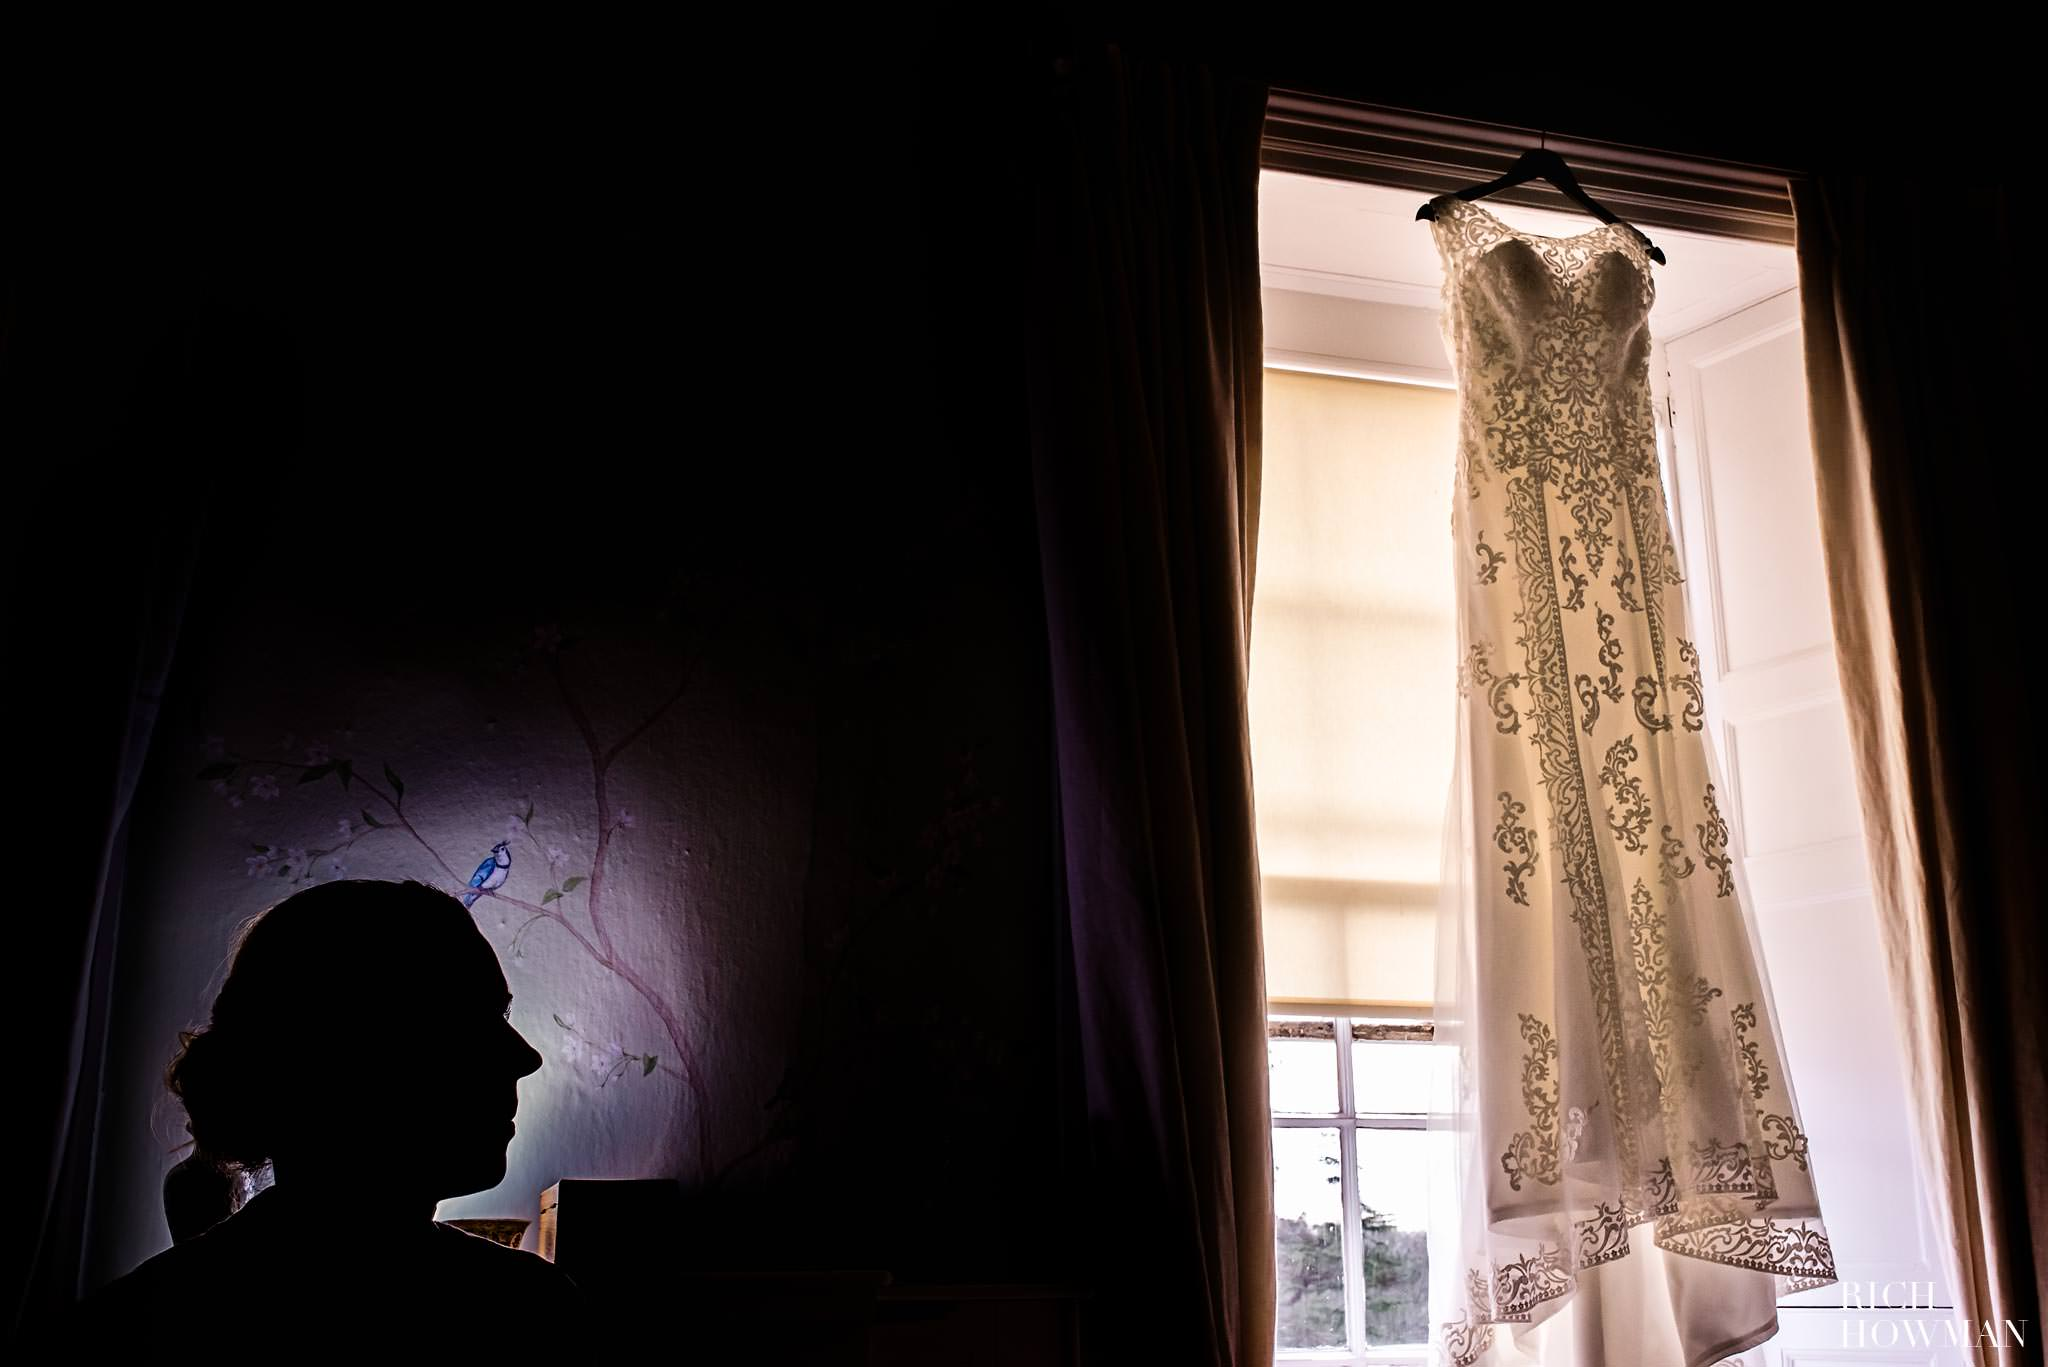 Bride getting ready at her Pennard House wedding - photographed by wedding photographer Rich Howman